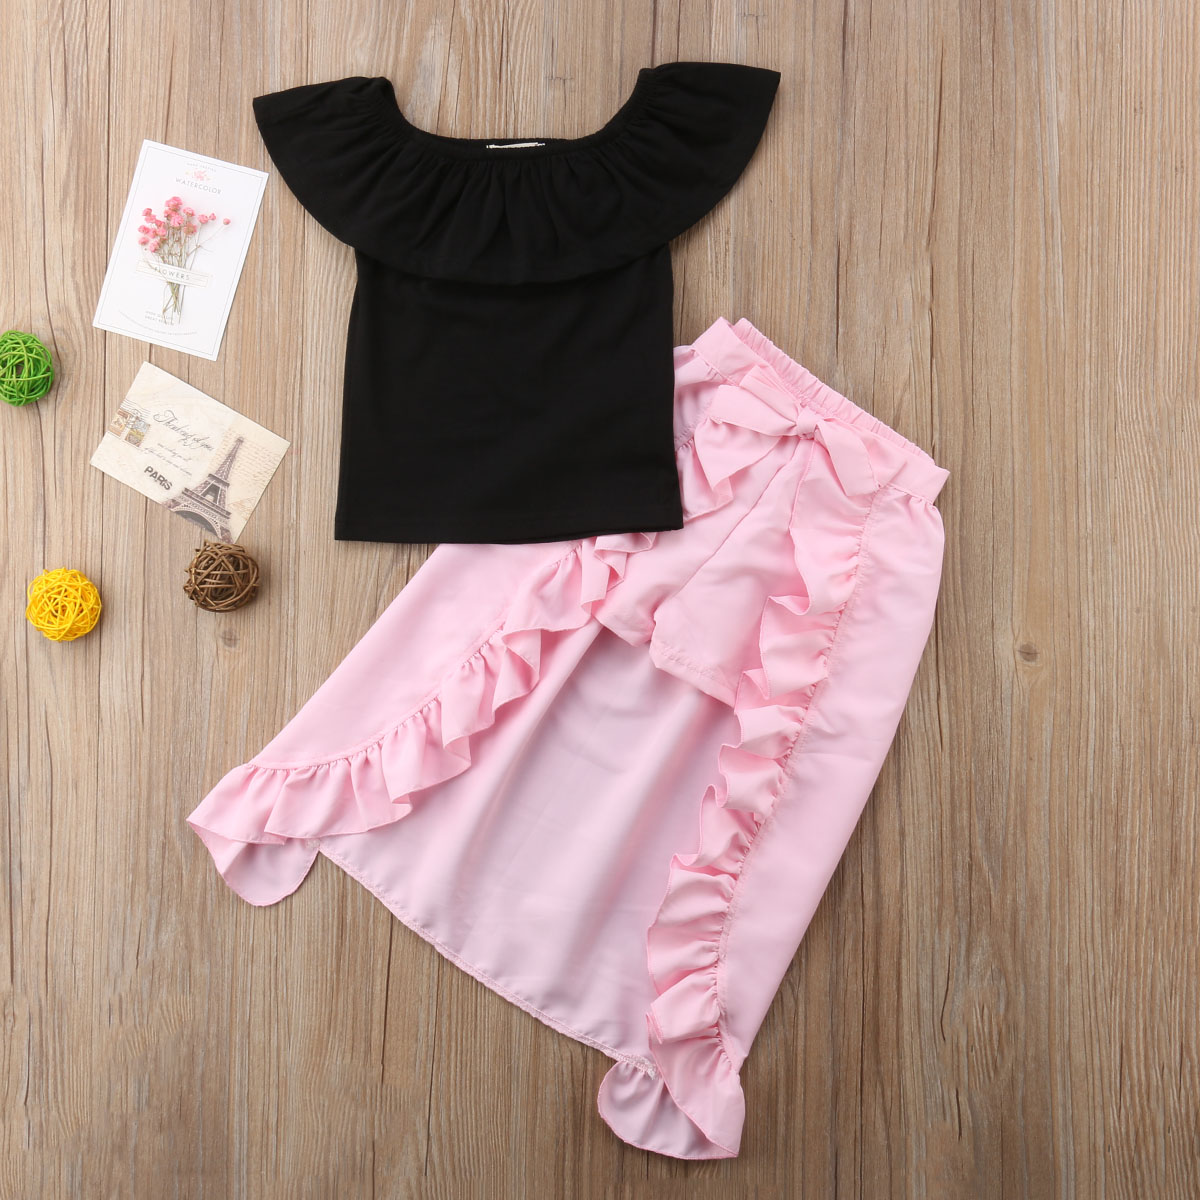 Pudcoco Hot Sale 3Pcs/Set Boutique Kids Baby Girl Off Shoulder Top Shorts Skirt Clothes Outfits 1-5T